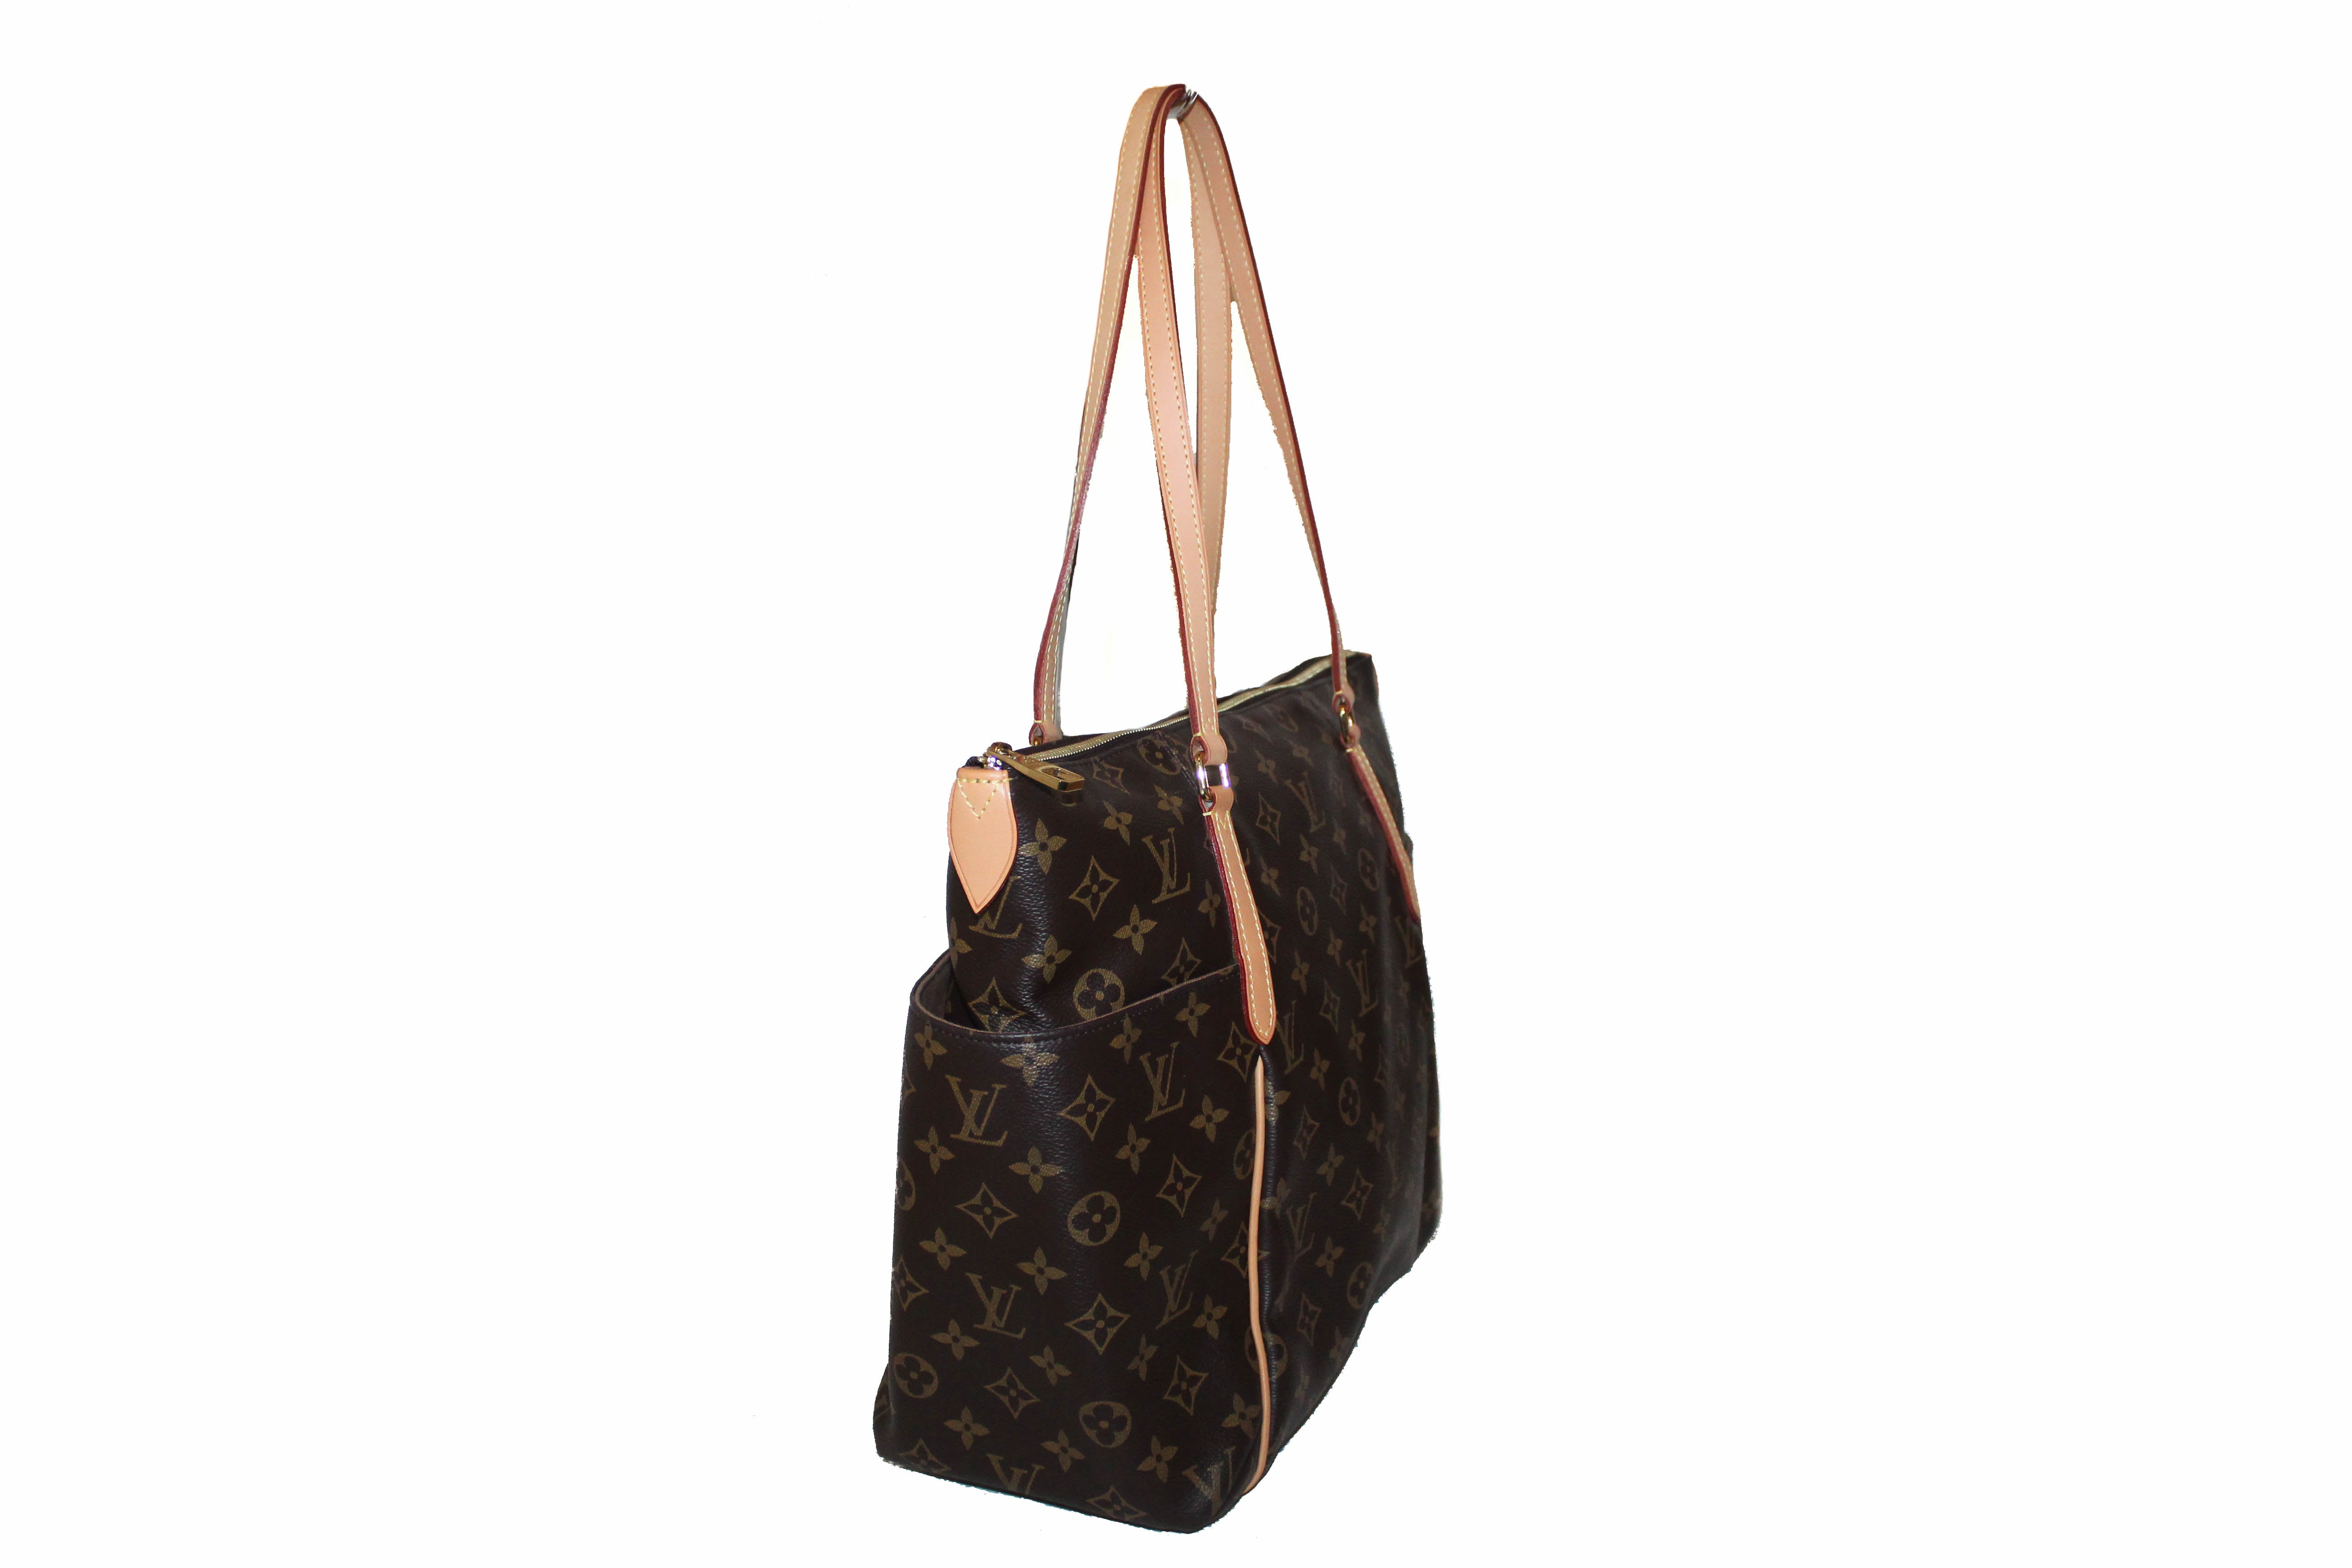 Authentic Louis Vuitton Classic Monogram Totally MM Tote Shoulder Bag